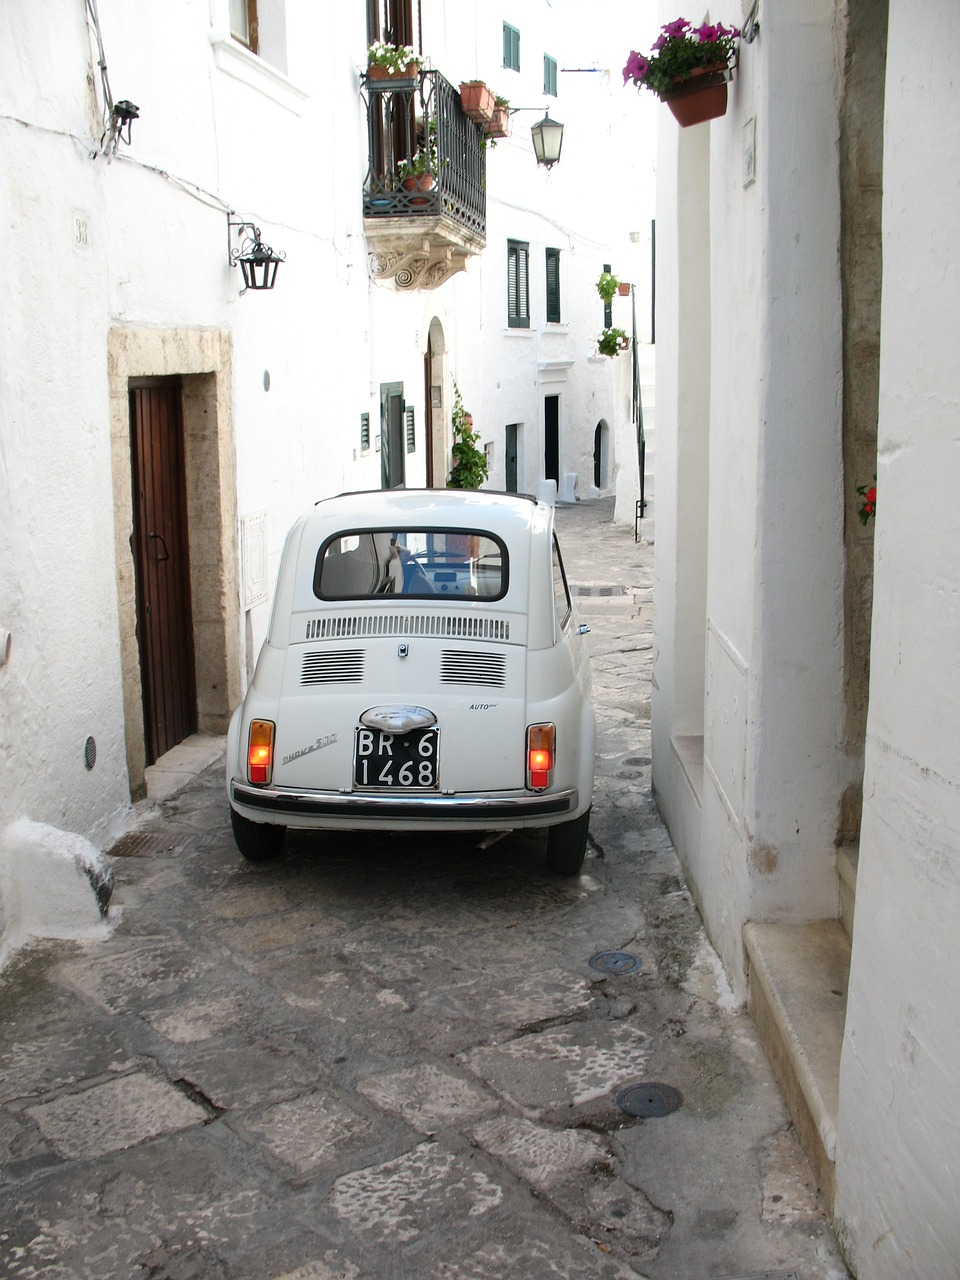 fiat 500 in the white city, italy